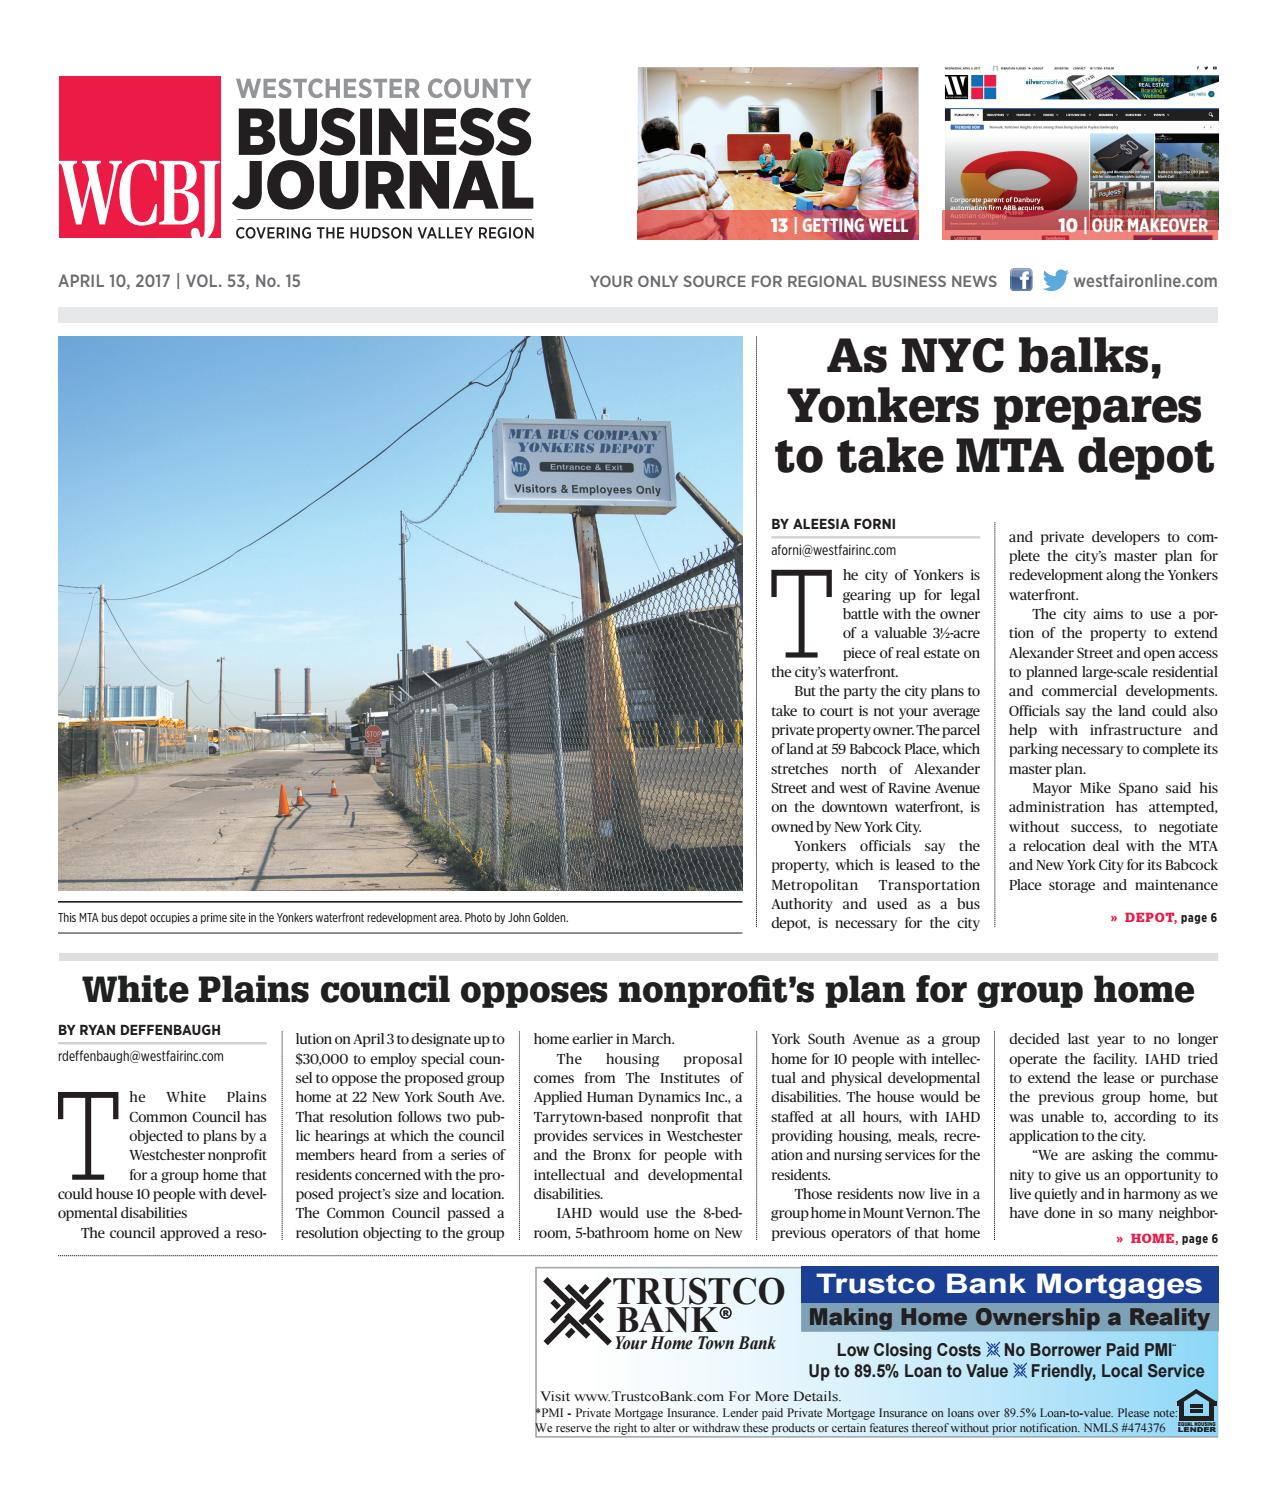 1688735c8 Westchester County Business Journal 041017 by Wag Magazine - issuu